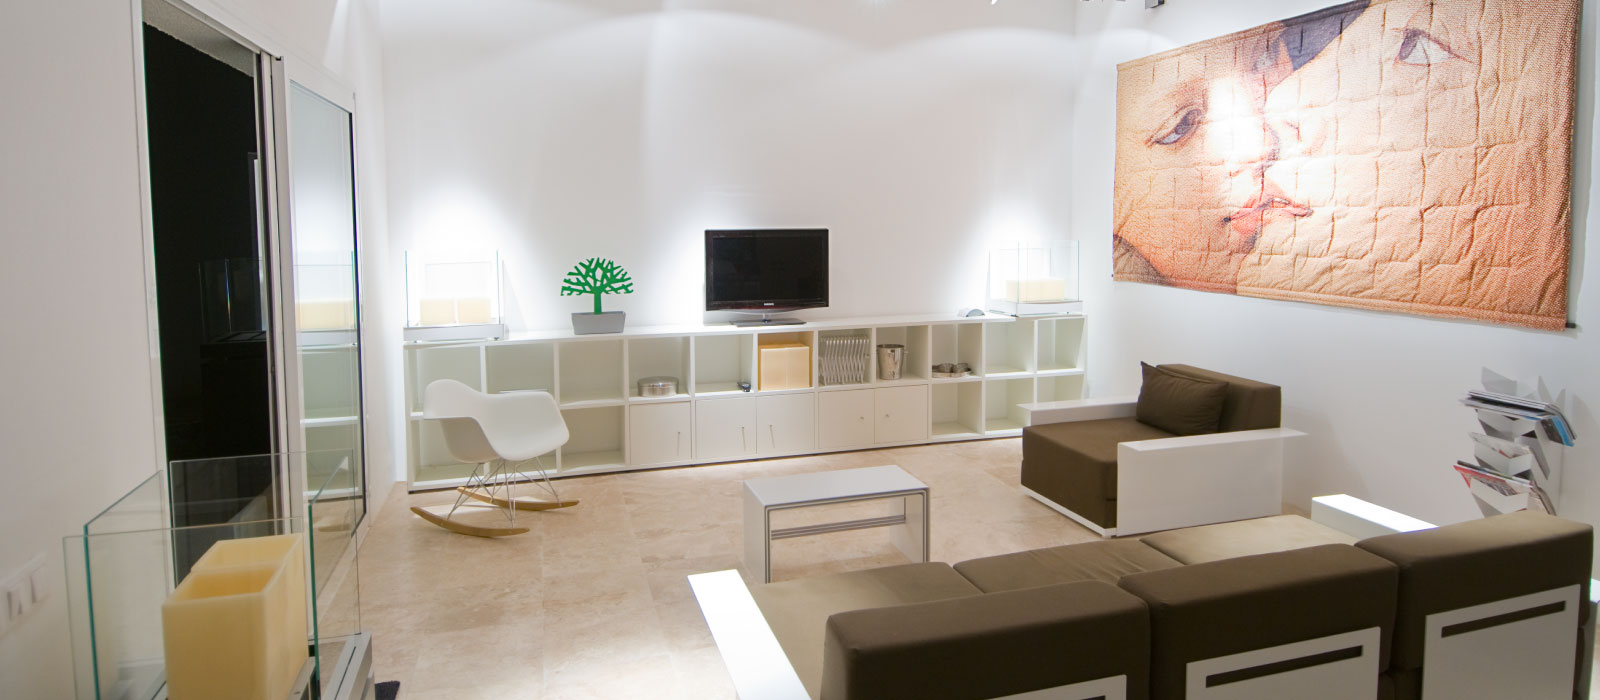 Radius Haus - Living room